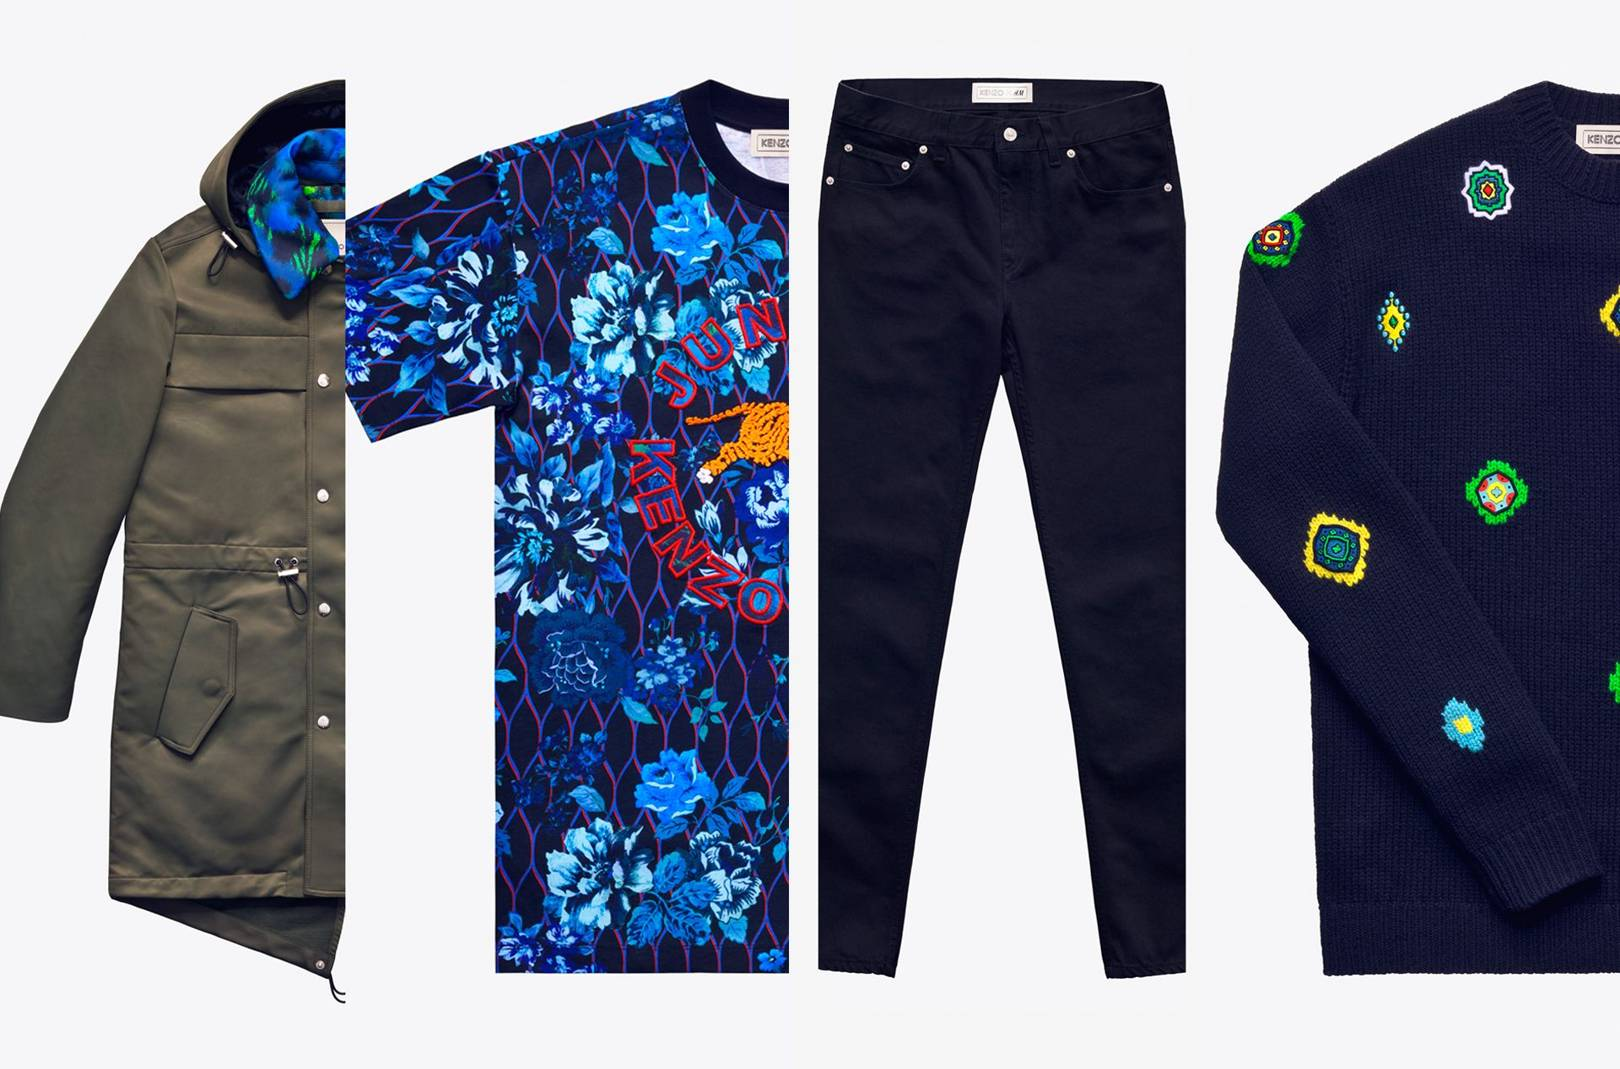 e2497b62052ac Kenzo x H&M collaboration: full collection plus prices | British GQ